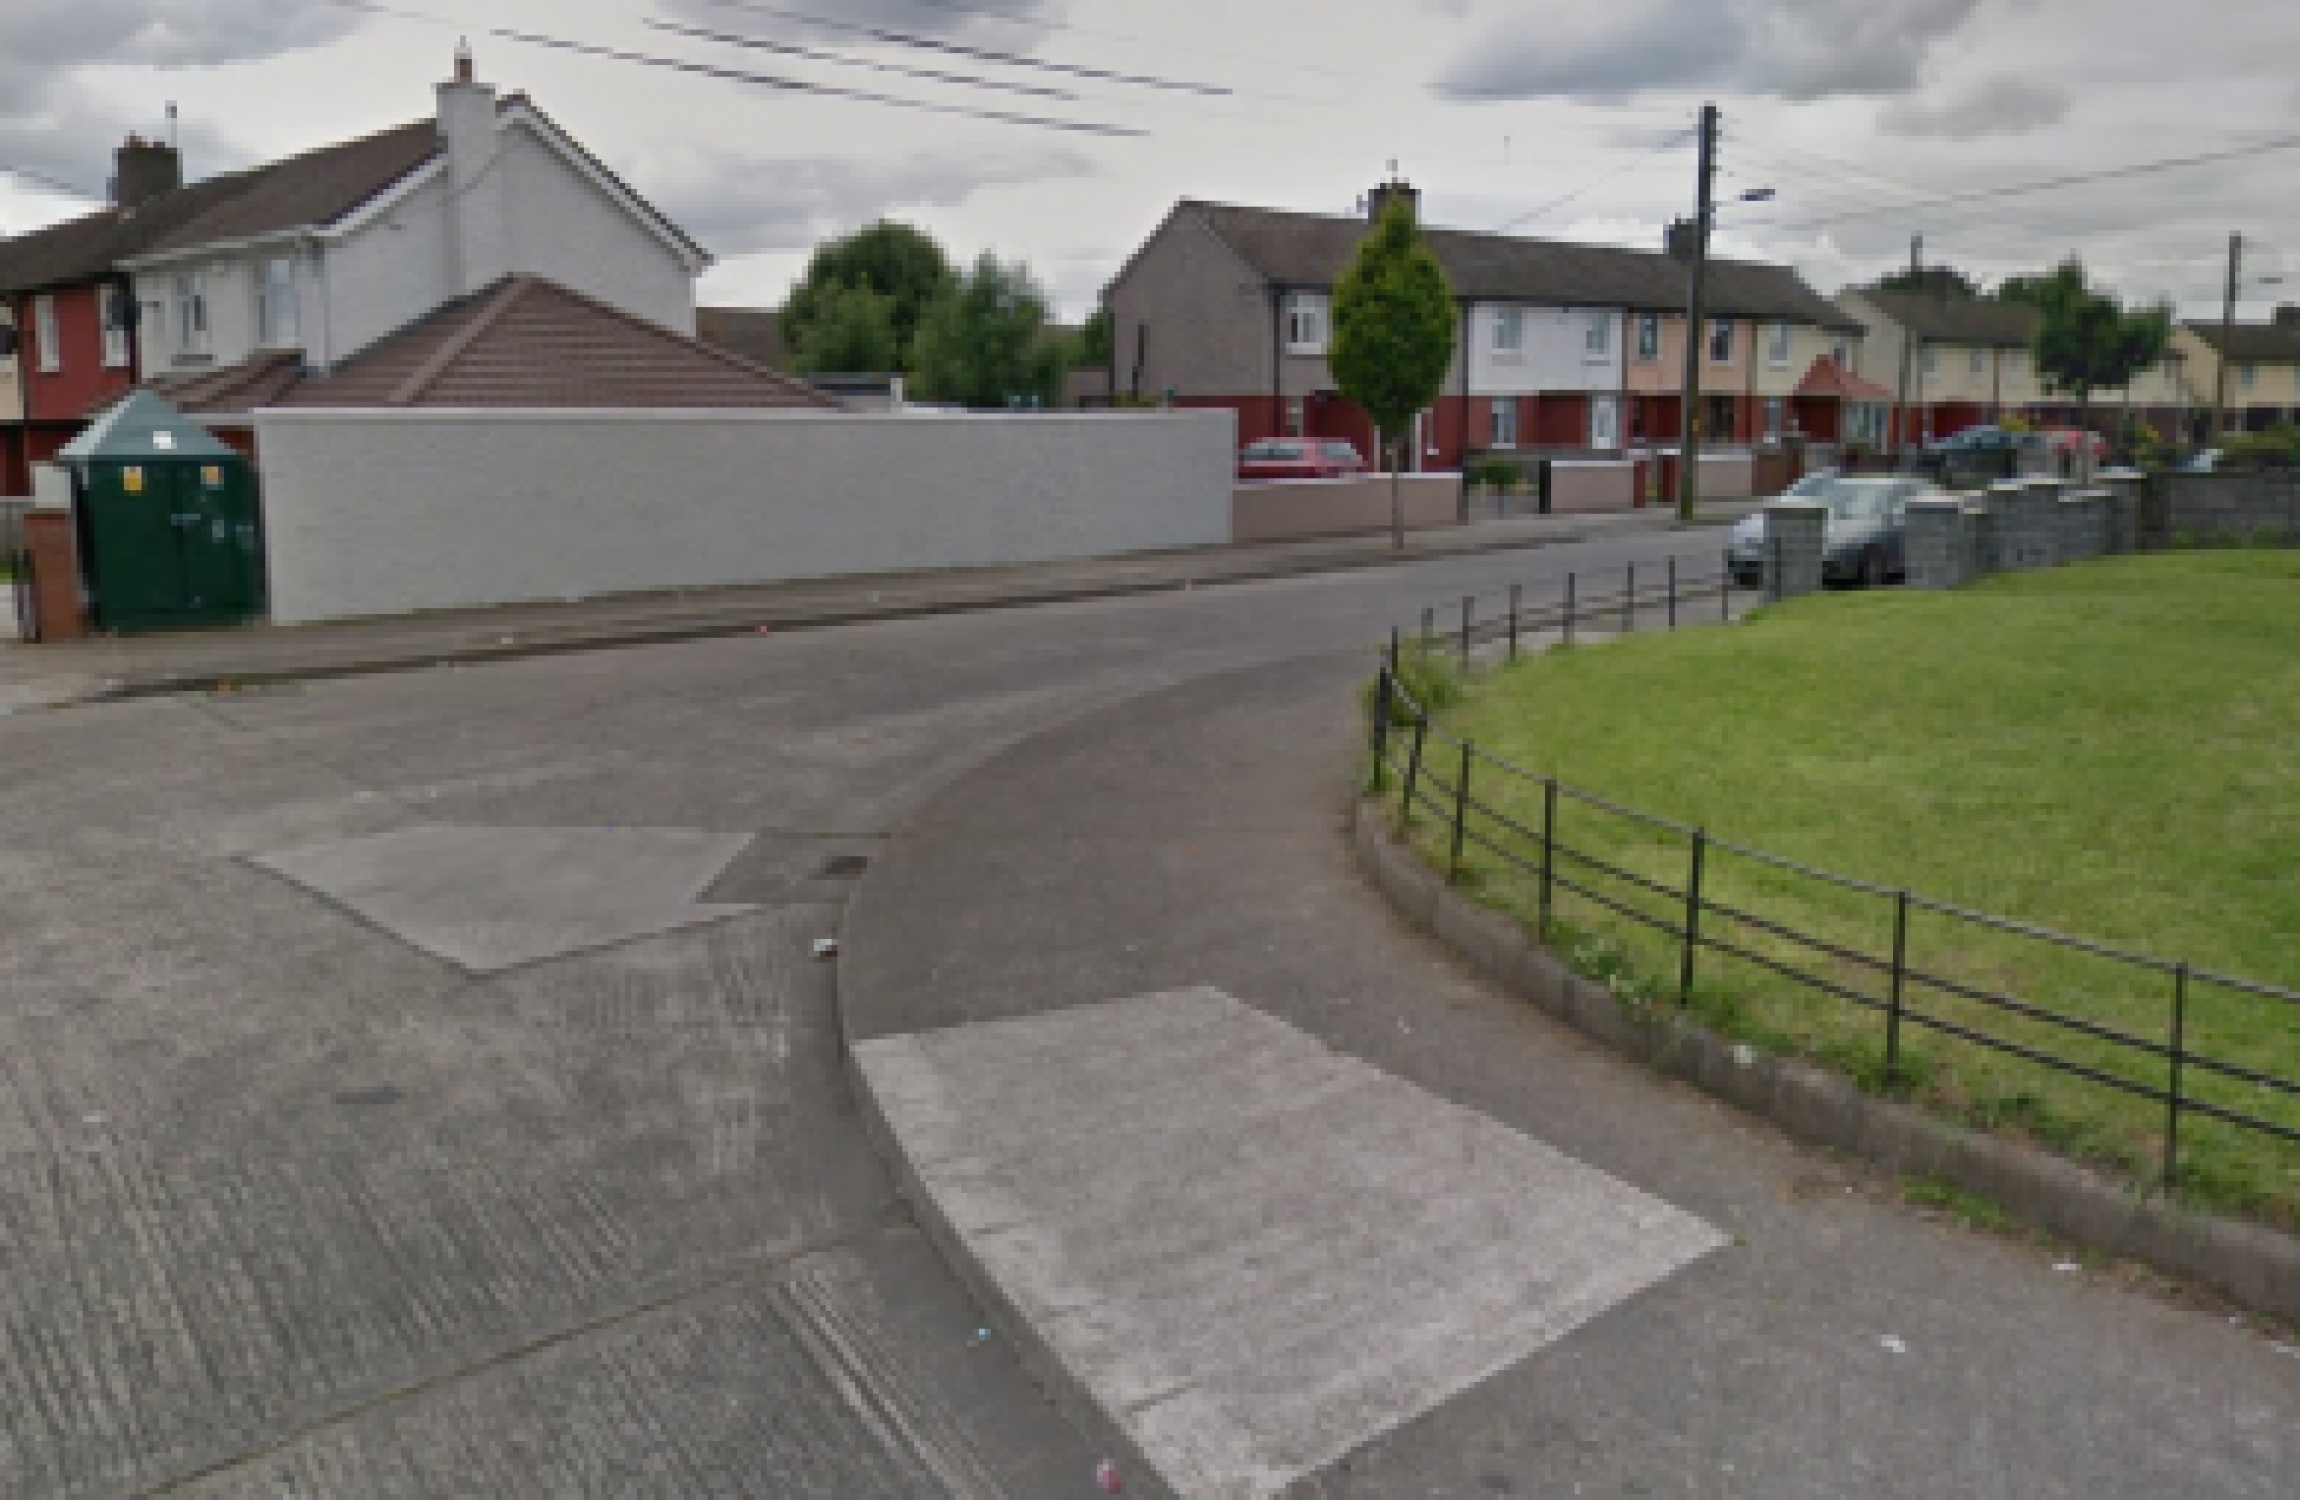 Motorcyclist dies after colliding with a pole in Dublin